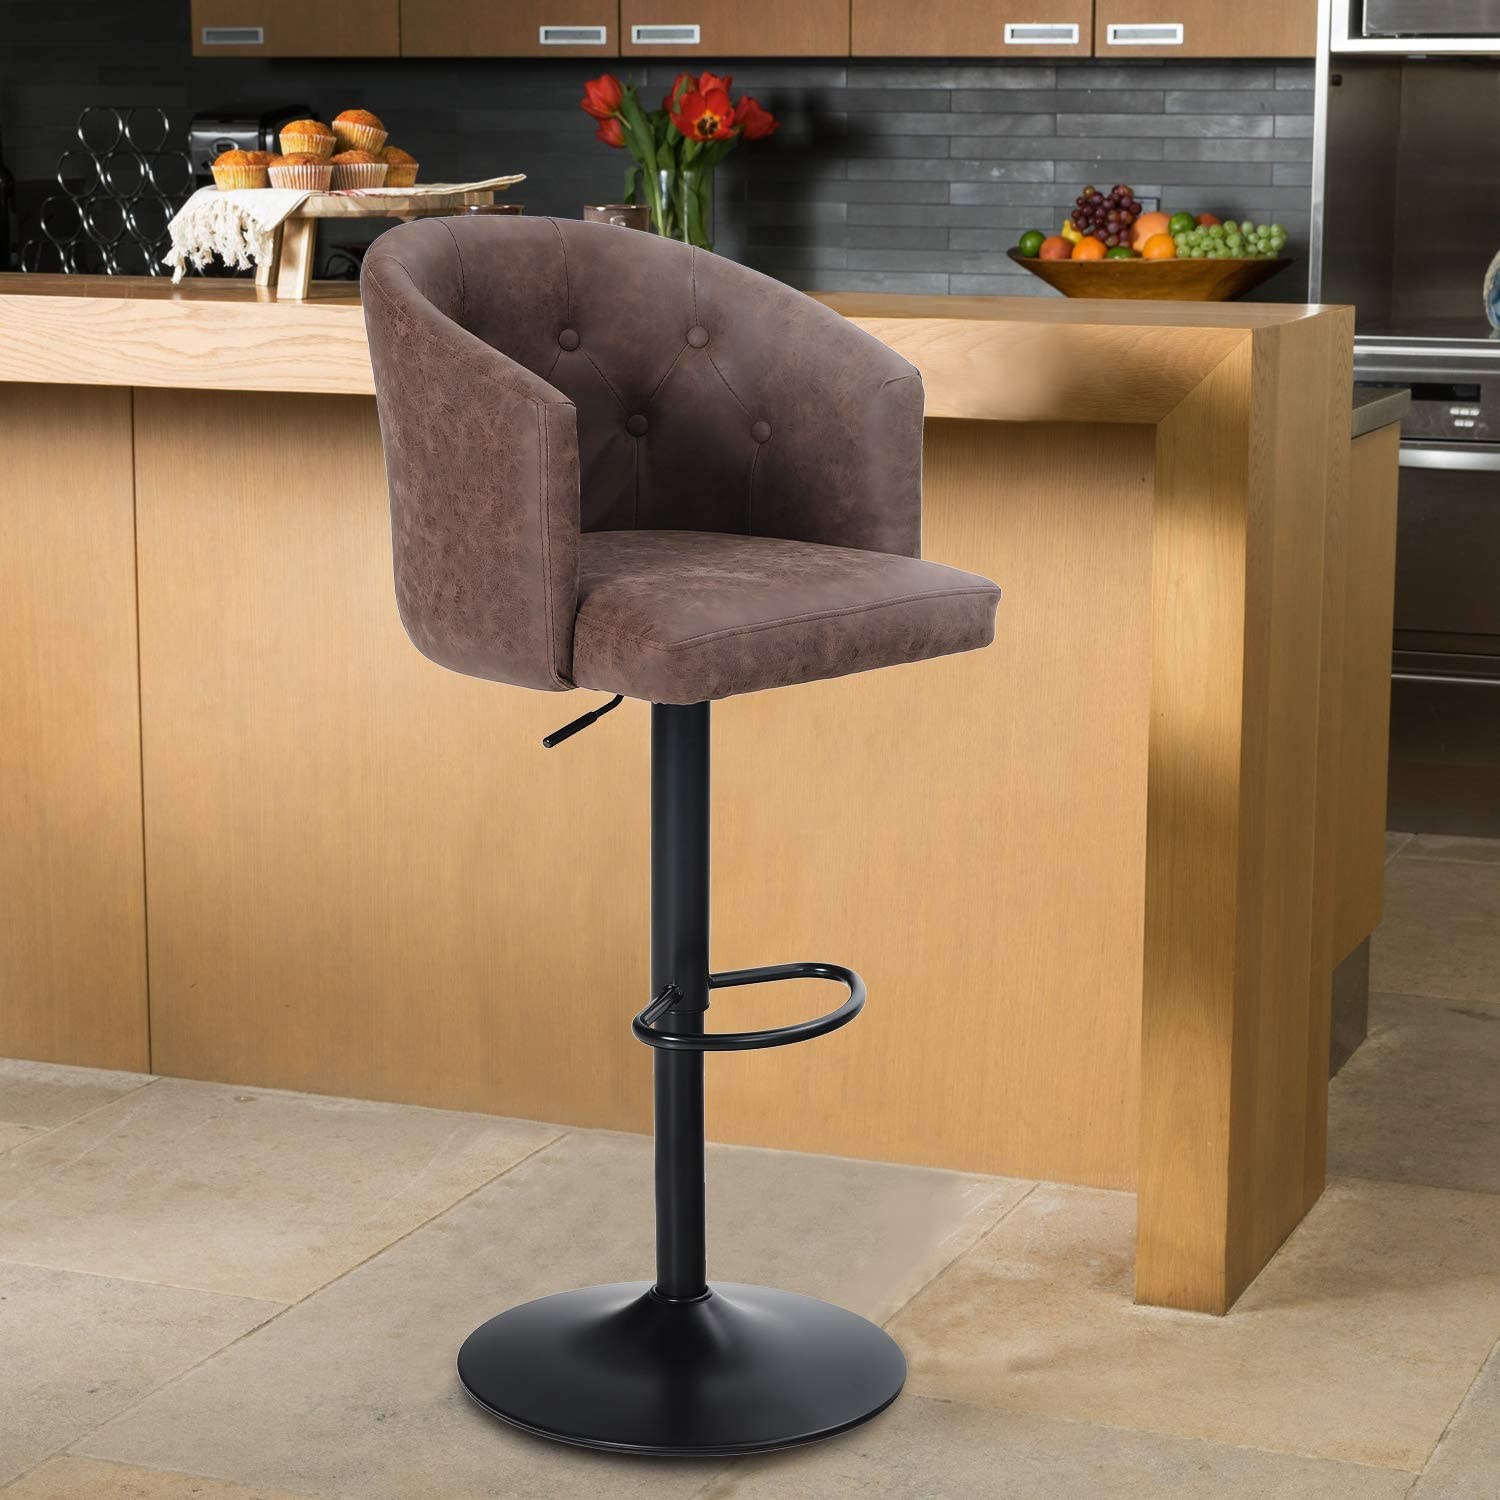 Buy Maison Swivel Bar Stool with Back for Kitchen Counter Height ...